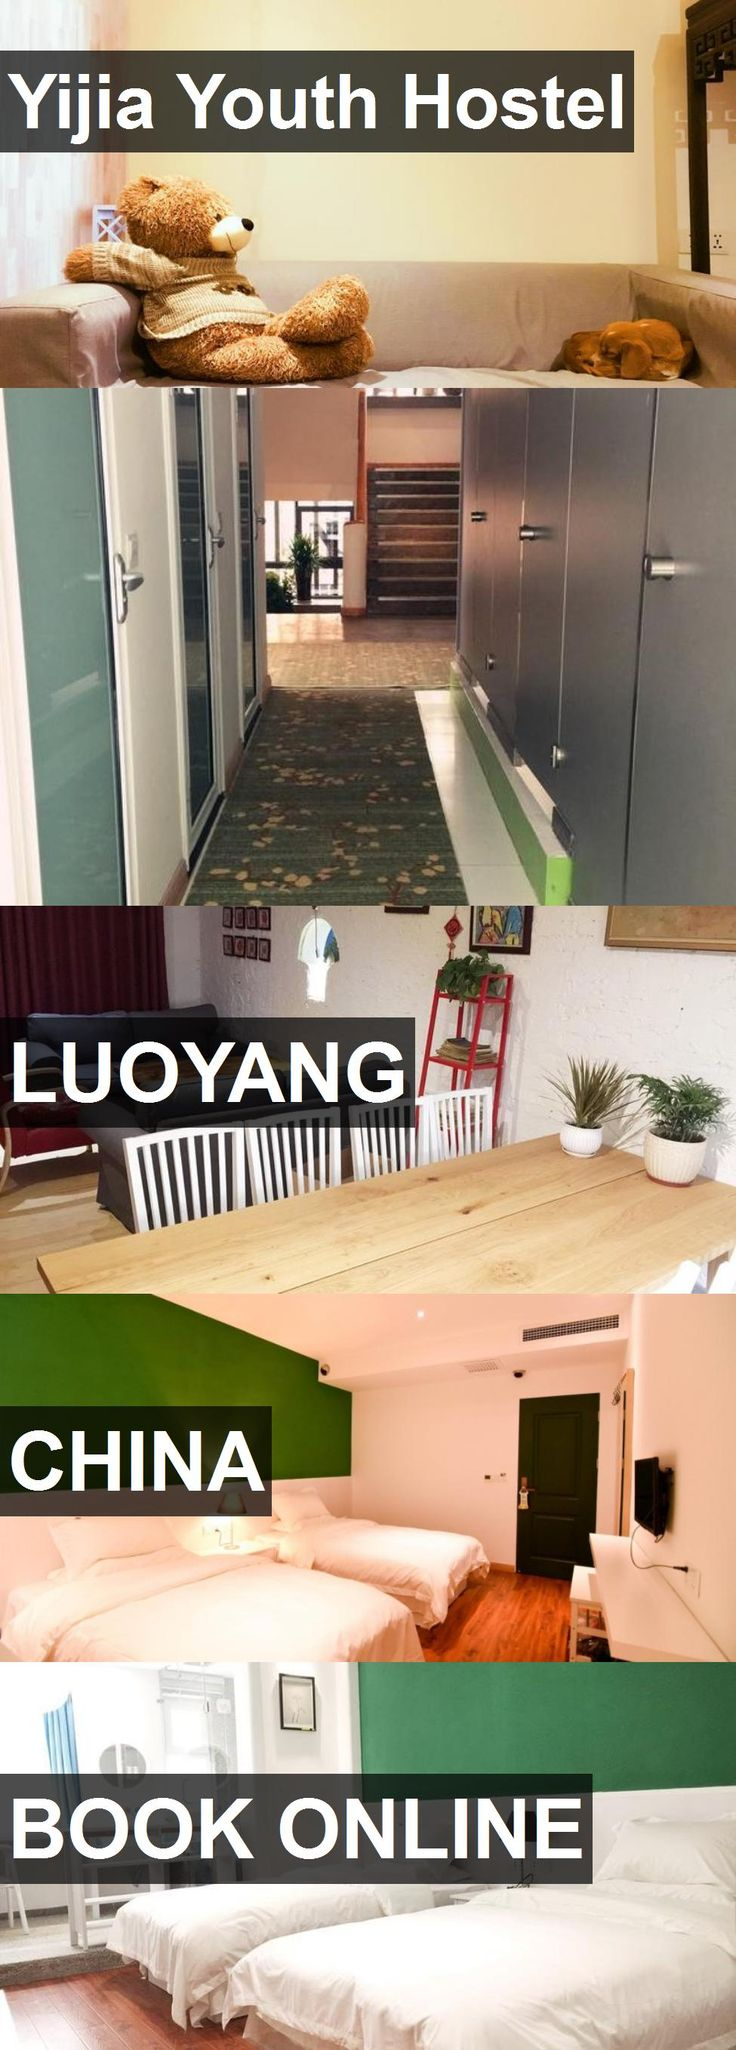 Hotel Yijia Youth Hostel in Luoyang, China. For more information, photos, reviews and best prices please follow the link. #China #Luoyang #hotel #travel #vacation